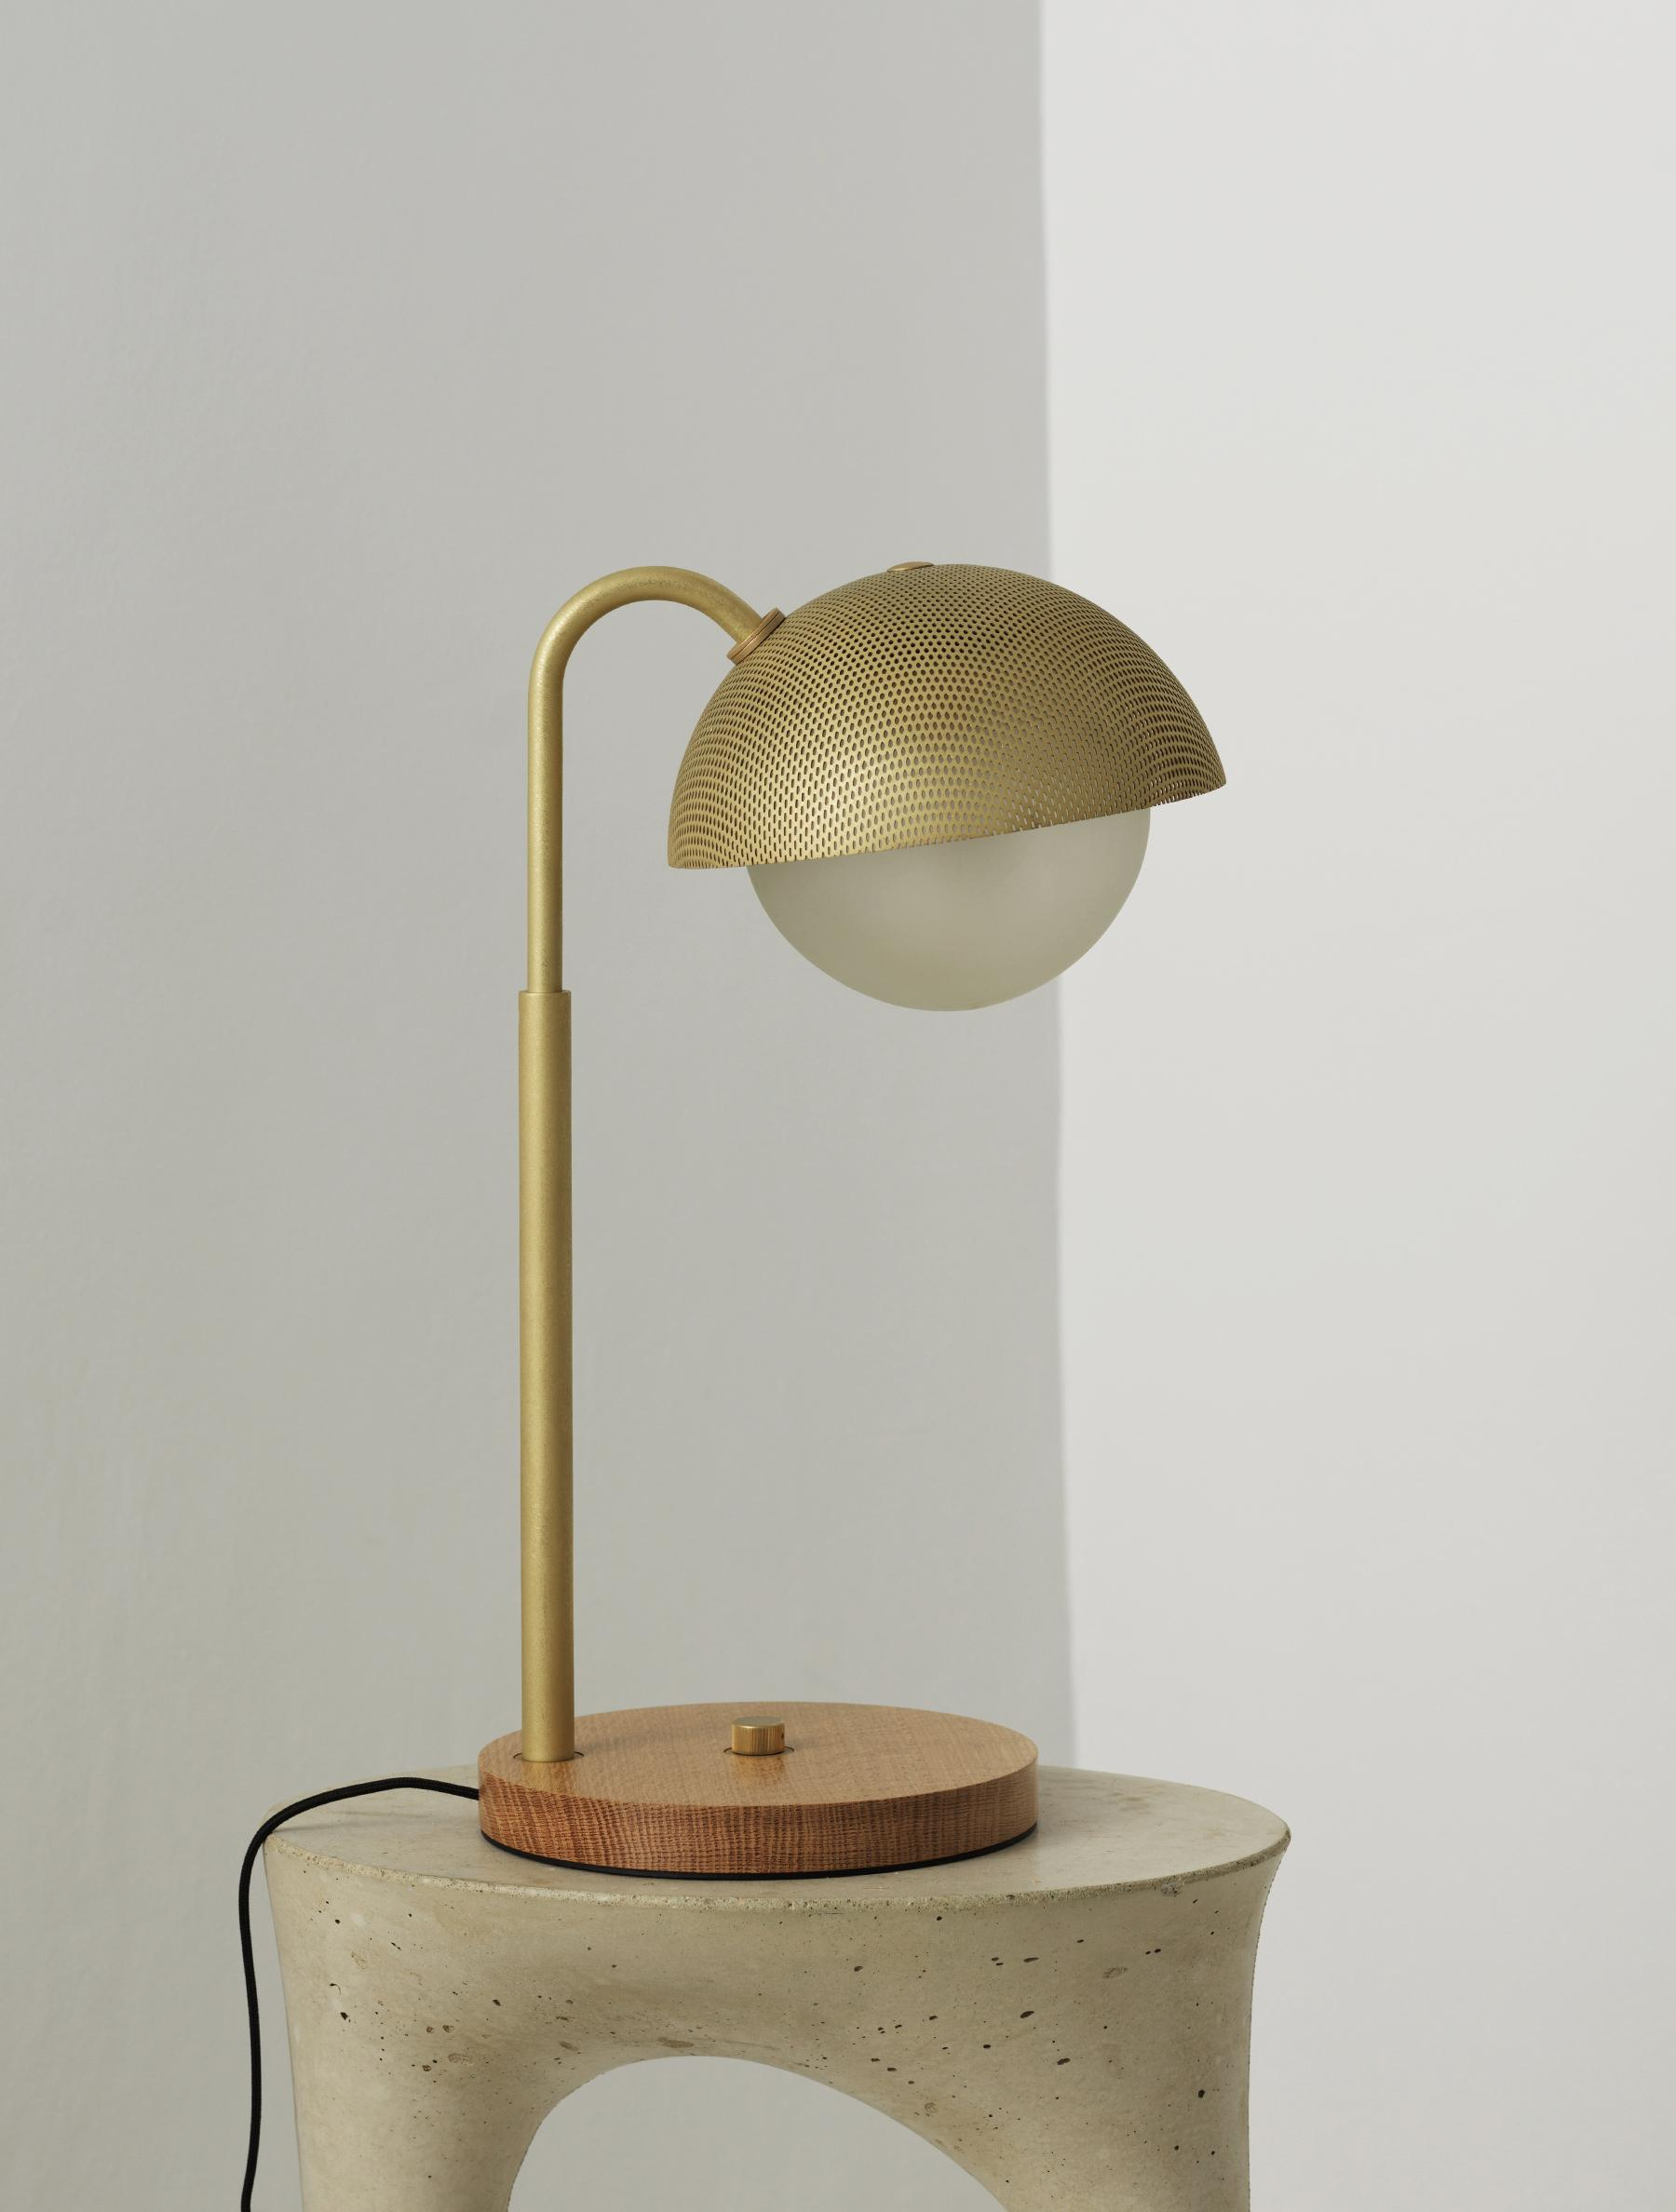 Dome Table Lamp Perforated shown in Stonewashed Brass, White Oak Base, Frosted Globe